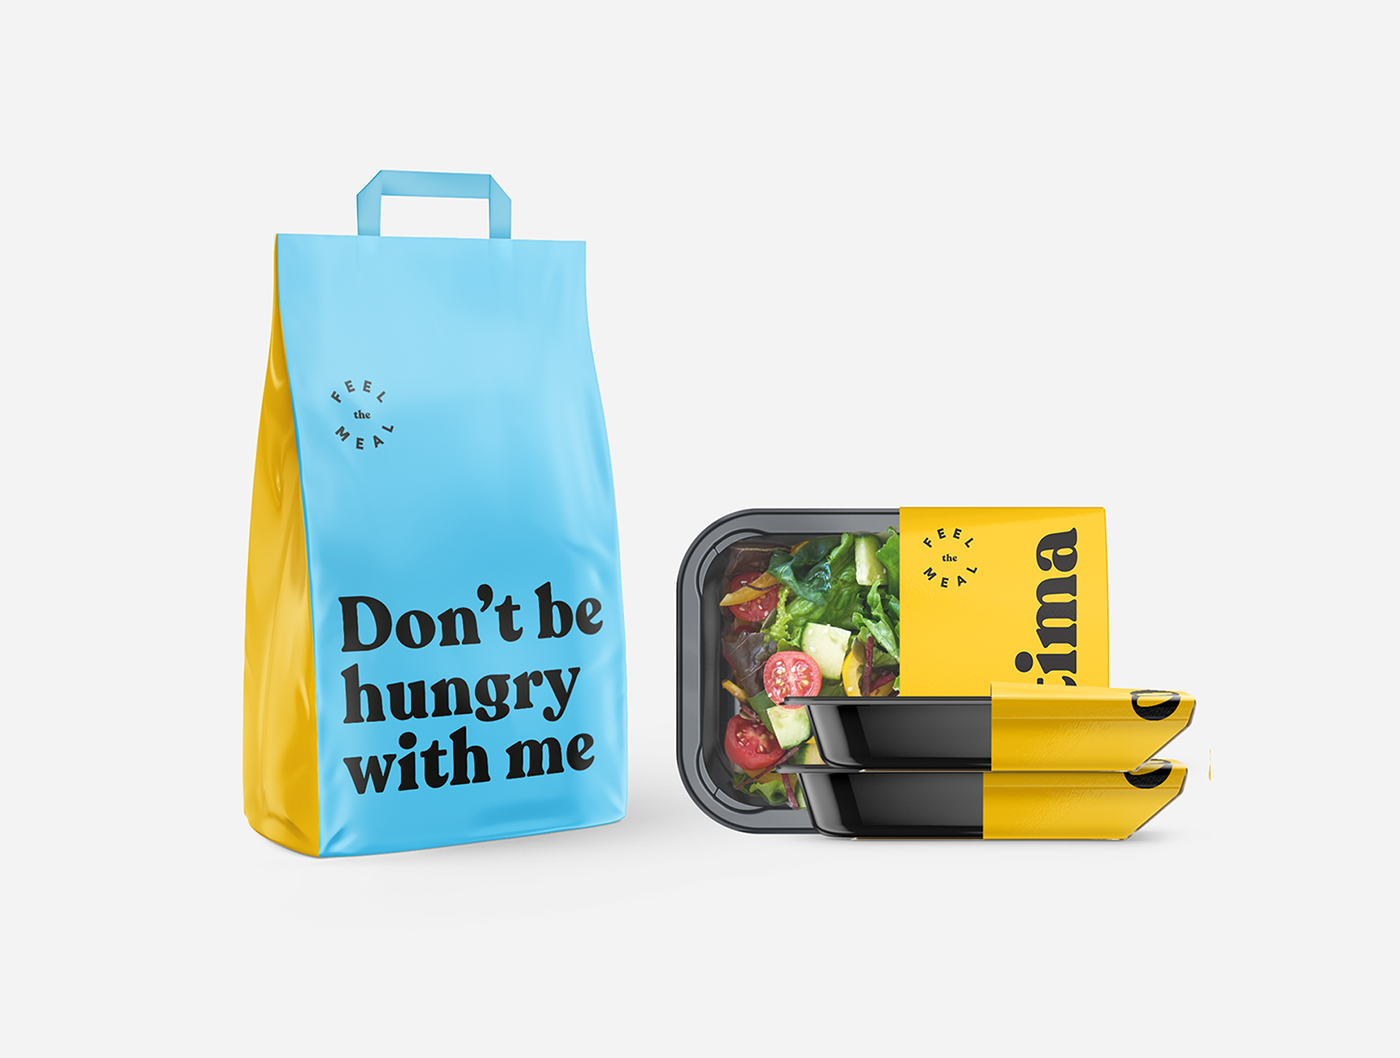 catering diet catering feel the meal colorful DESIGN Catering Brand catering dietetyczny